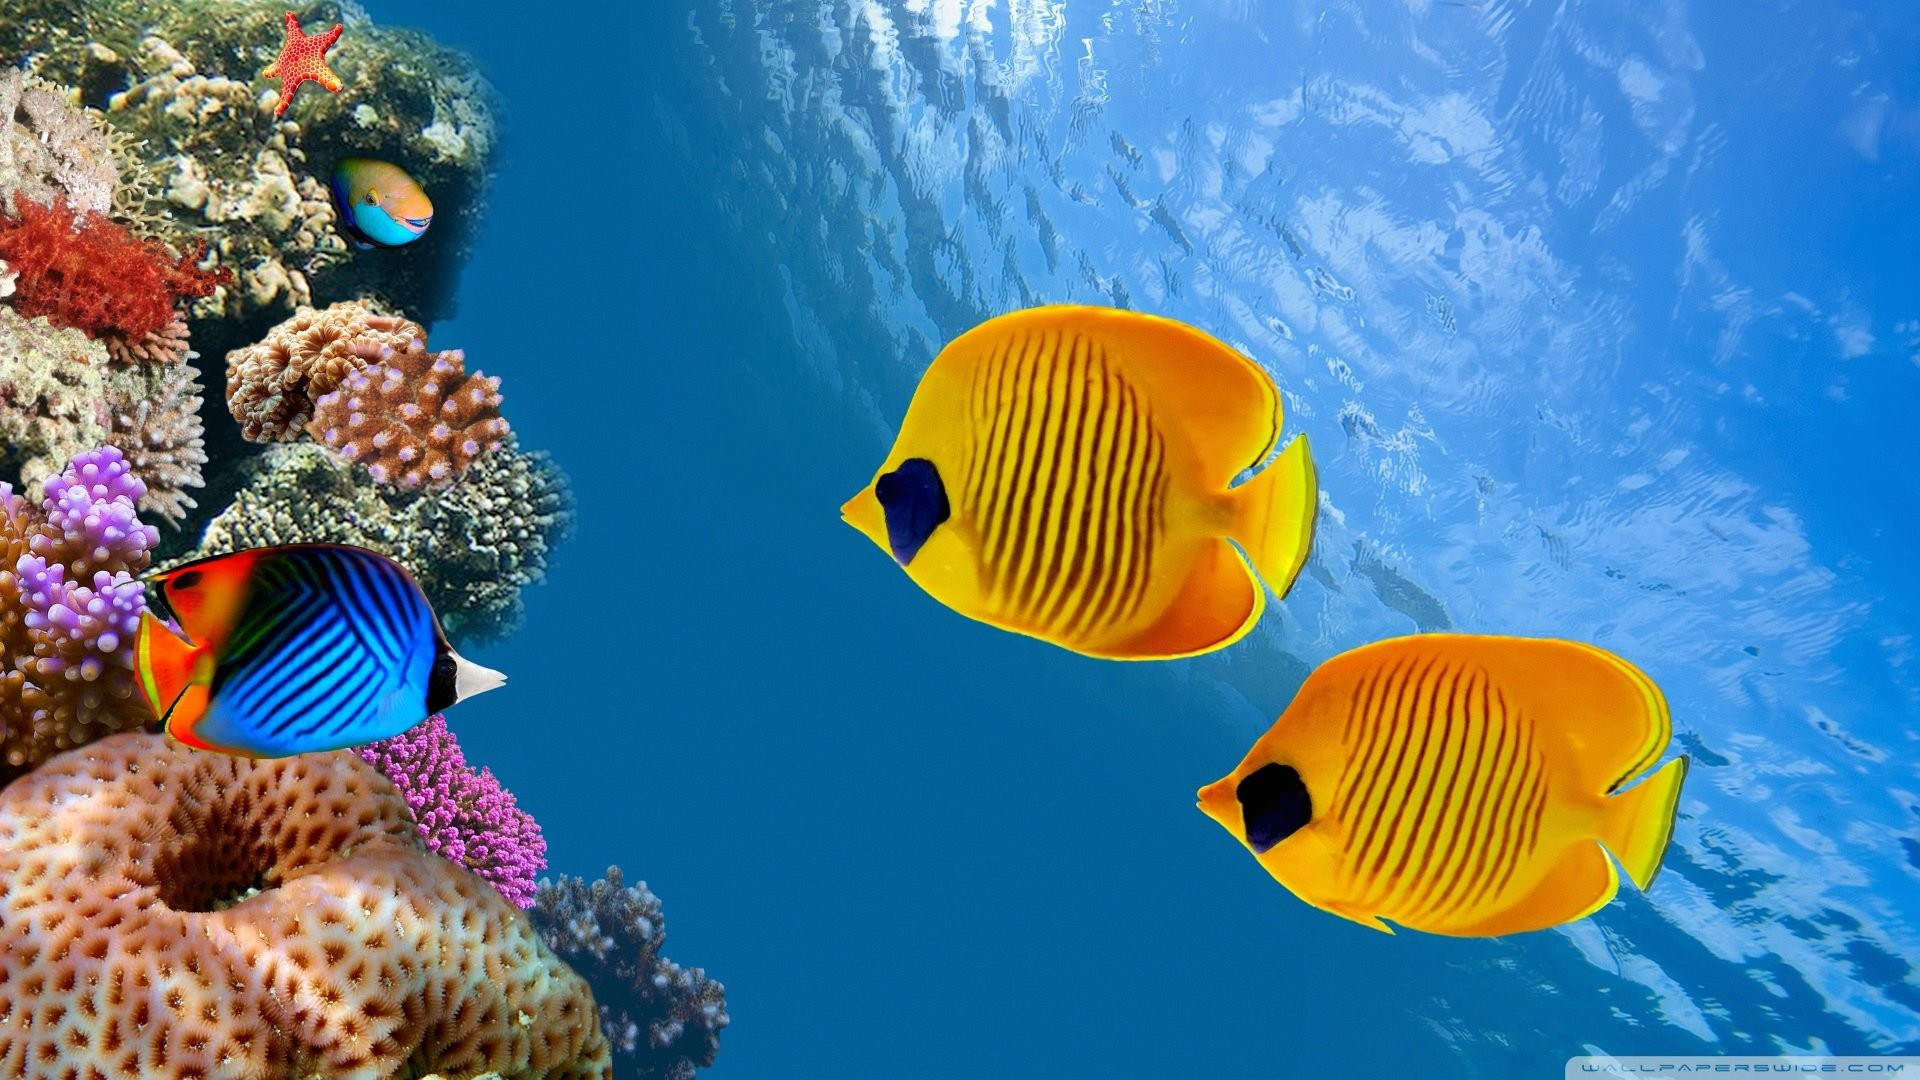 Fish HD Wallpapers Backgrounds Wallpaper